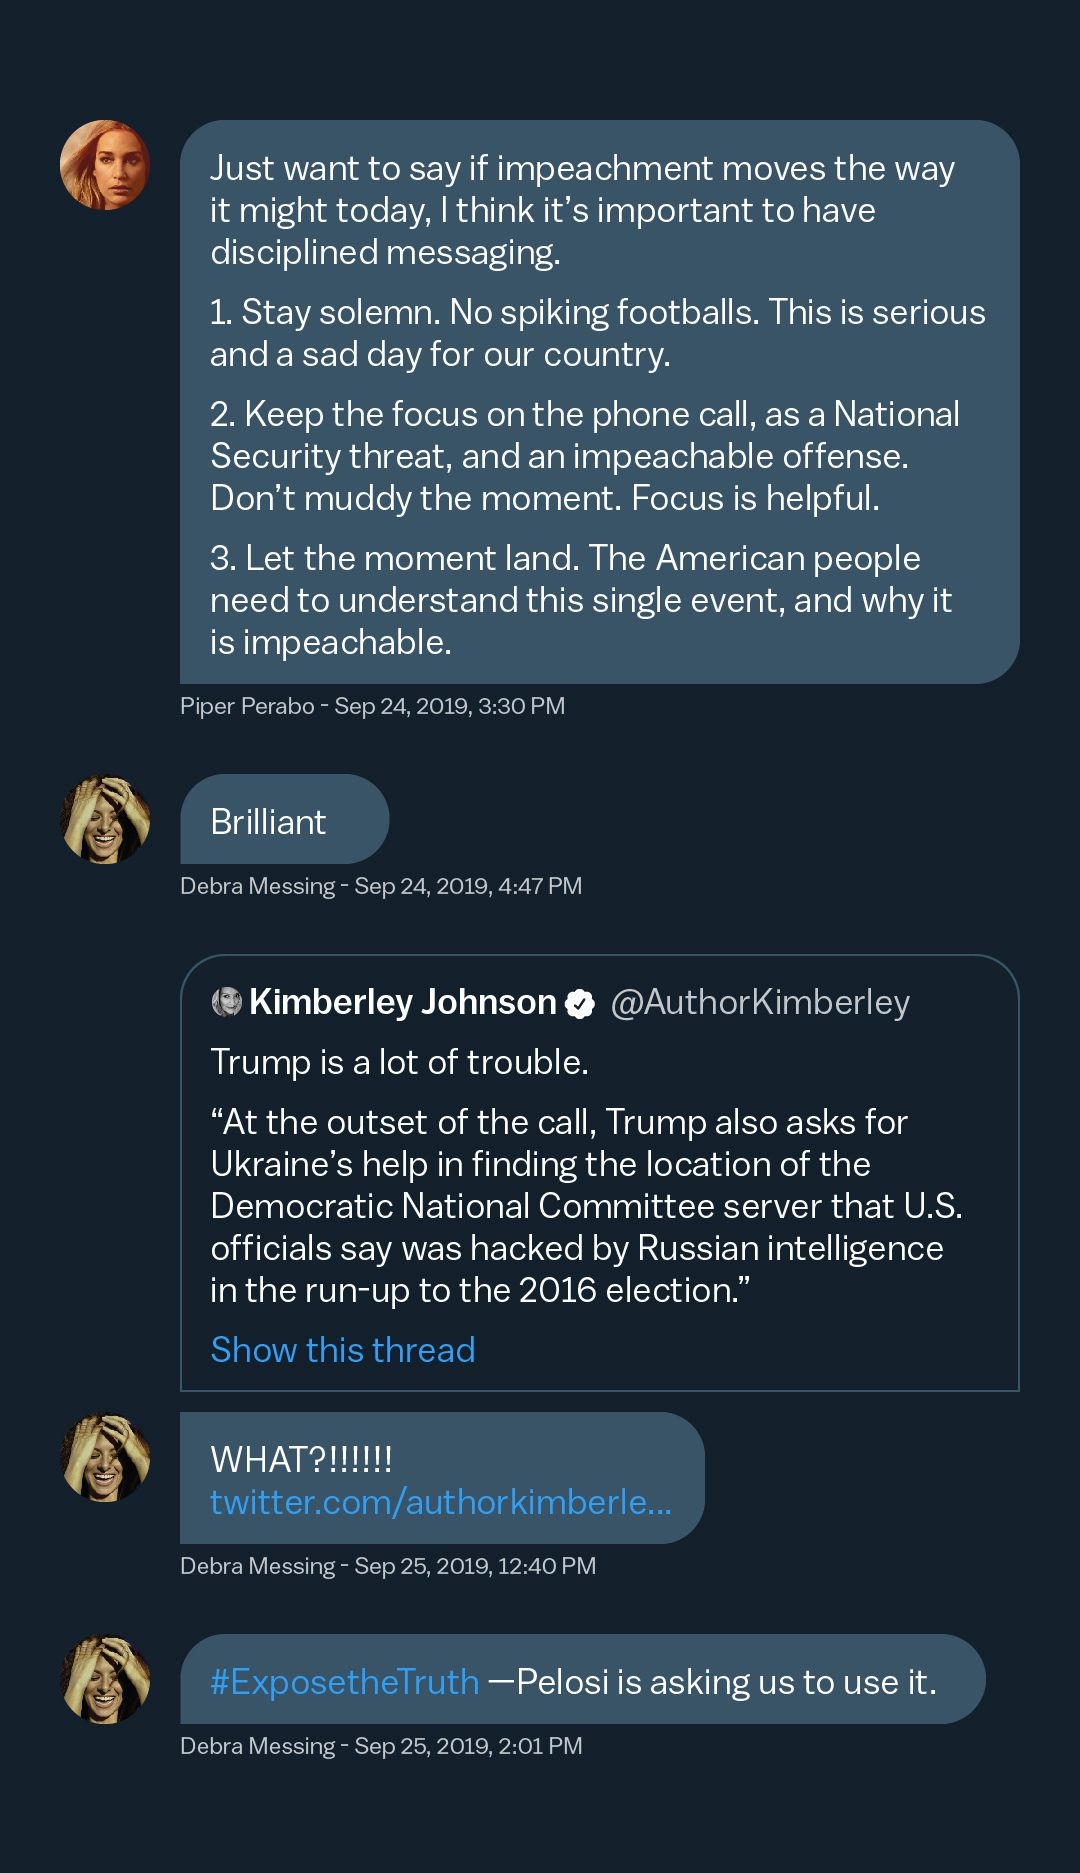 A direct message conversation between Piper Perabo and Debra Messing about impeachment.